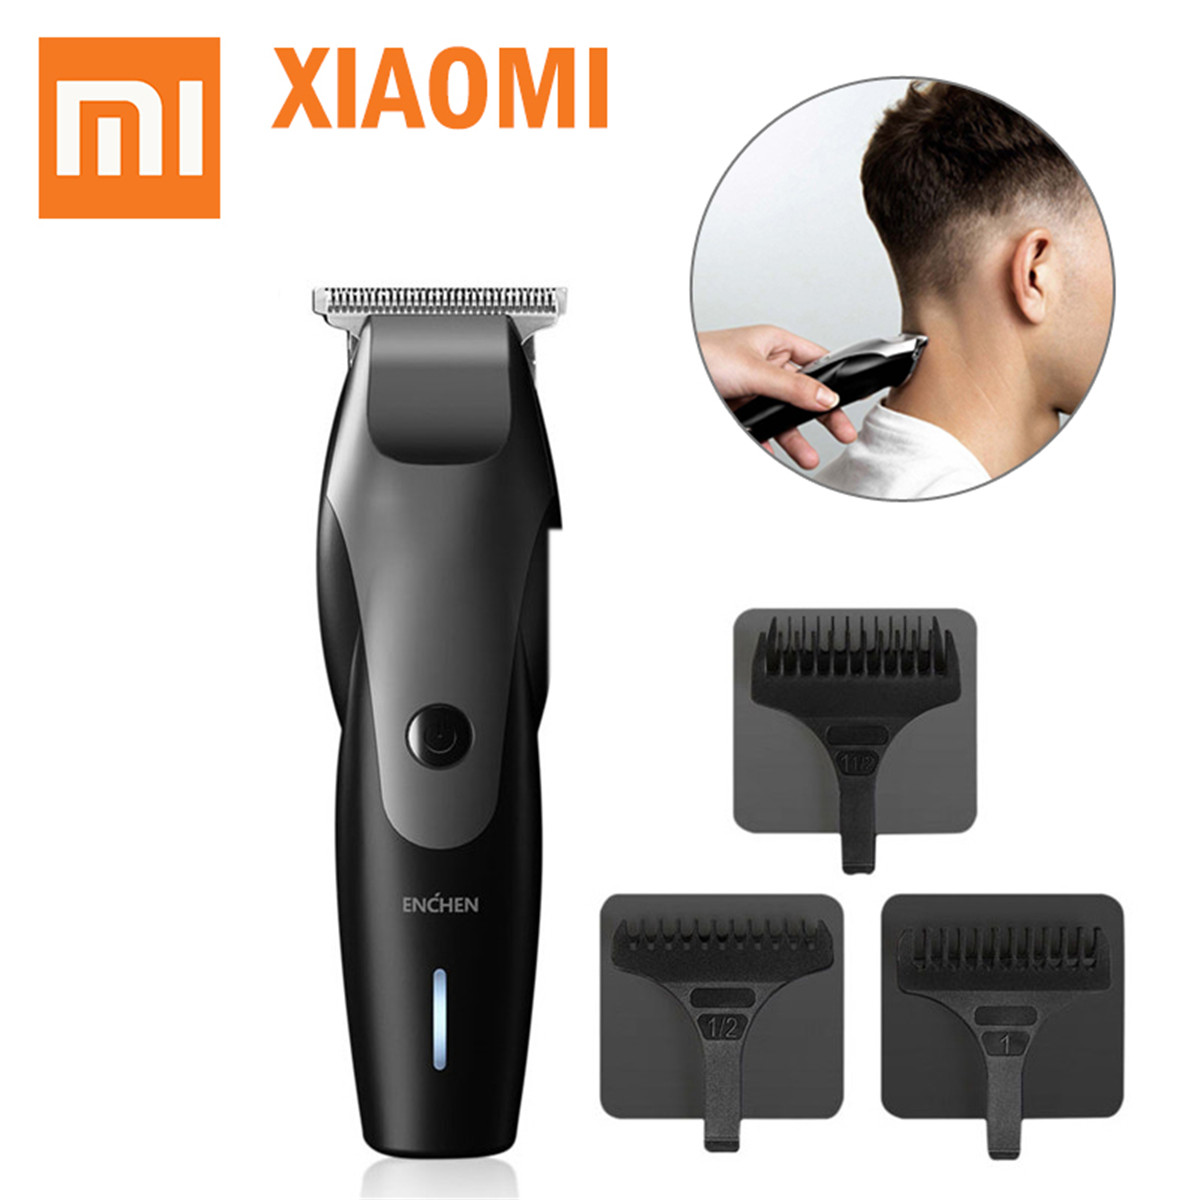 ENCHEN Hummingbird Electric Hair Trimmer USB Charging Low Noise Hair Clipper Digital Haircut With 3 Hair Comb From Xiaomi Youpin